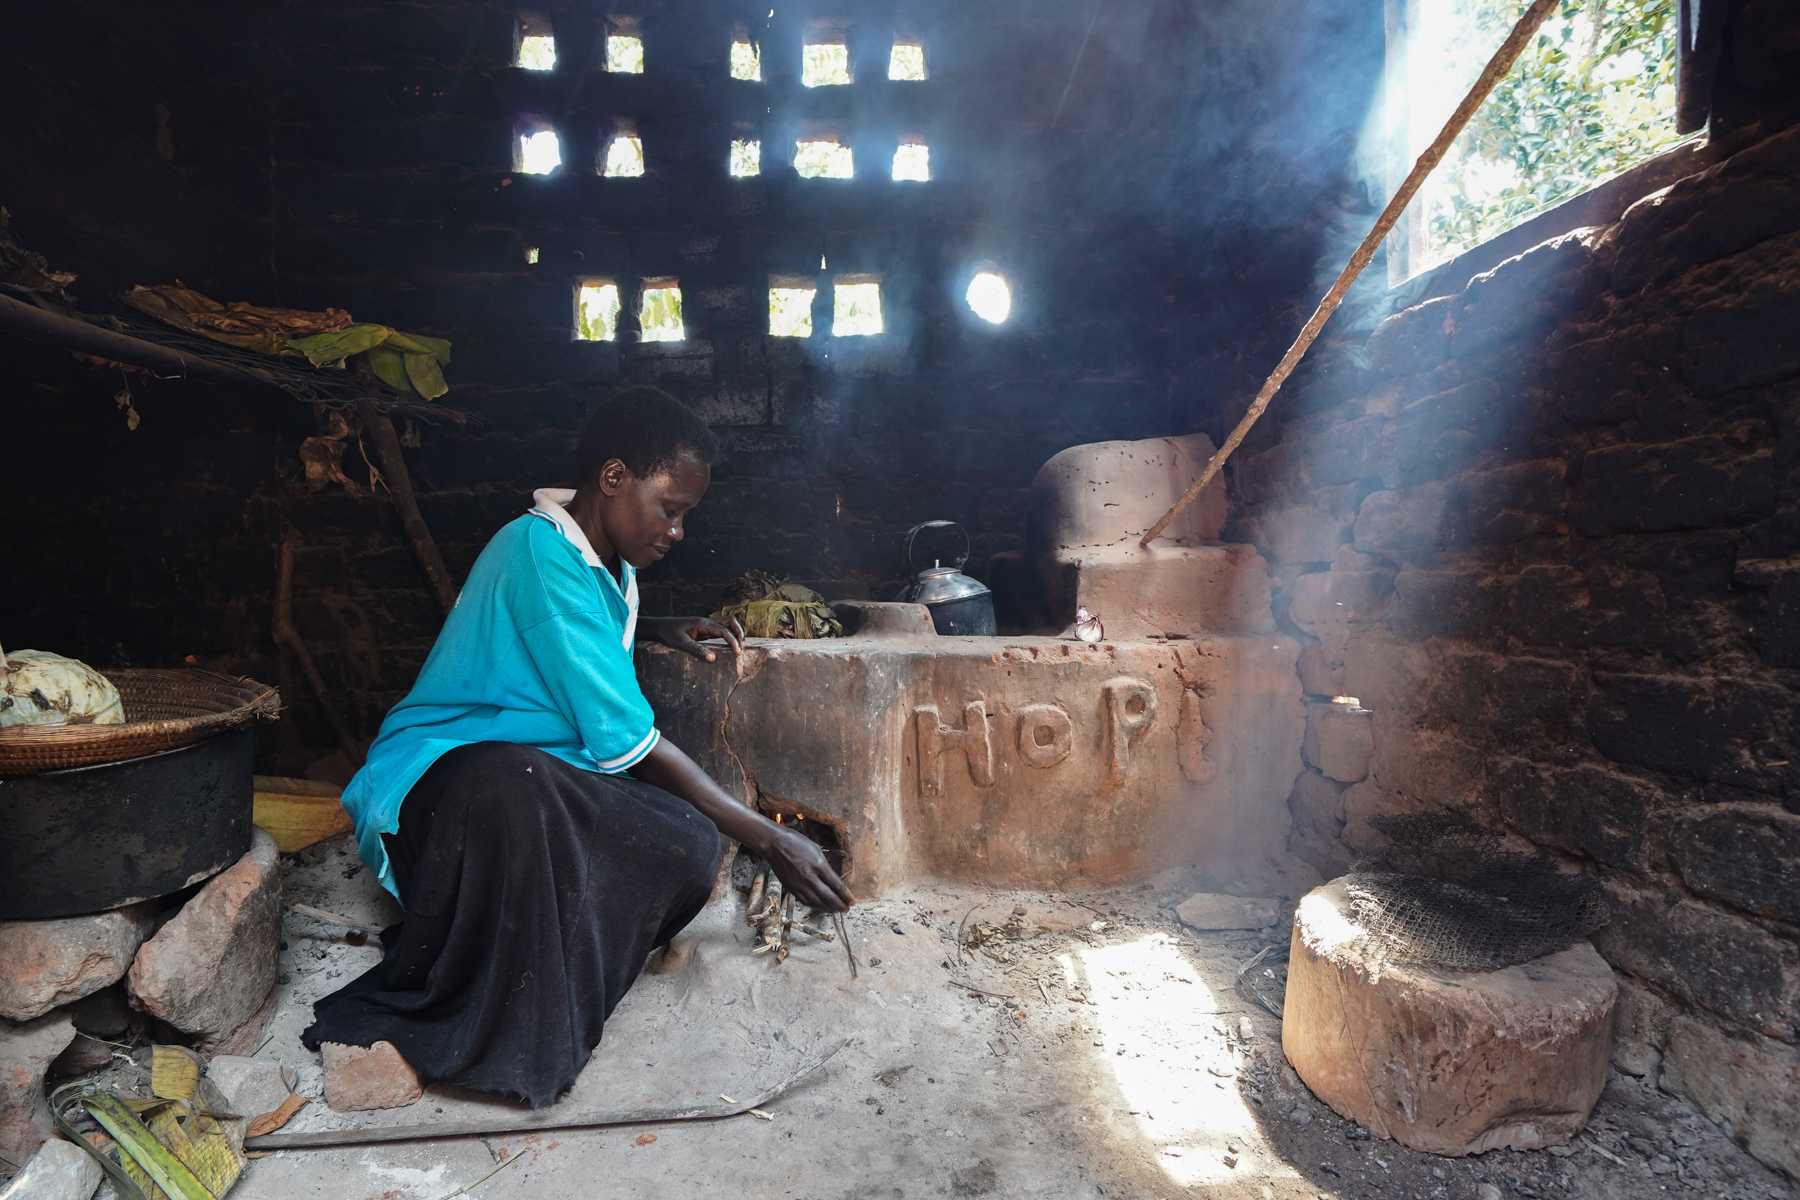 An example of the energy-efficient cookstove being built by women in the HoPE-LVB project. While traditional cookstoves make cooking areas quite smoky, this cookstove has a chimney that filters smoke outside. With more insulation for the fire, it also conserves firewood use.